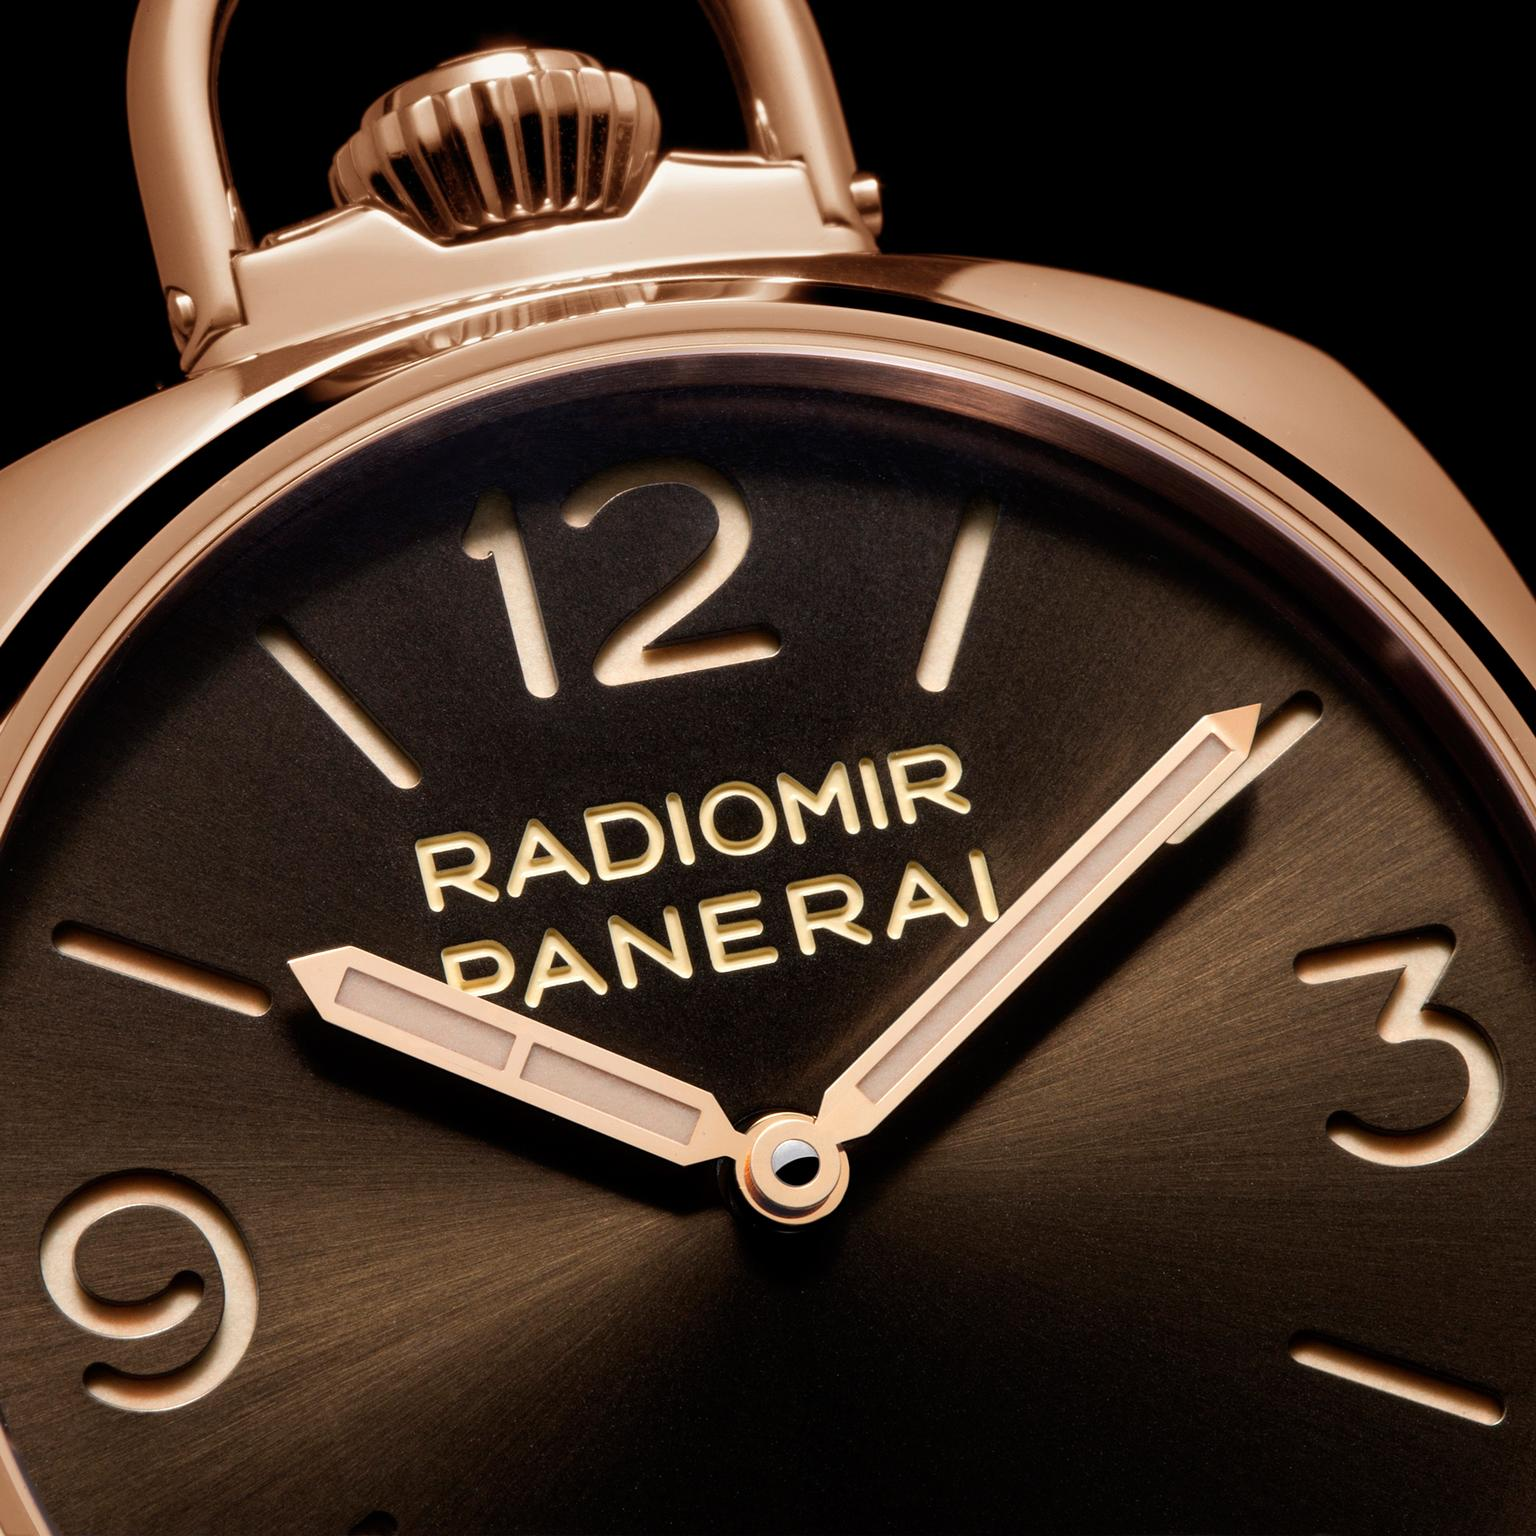 Panerai Radiomir pocket watch